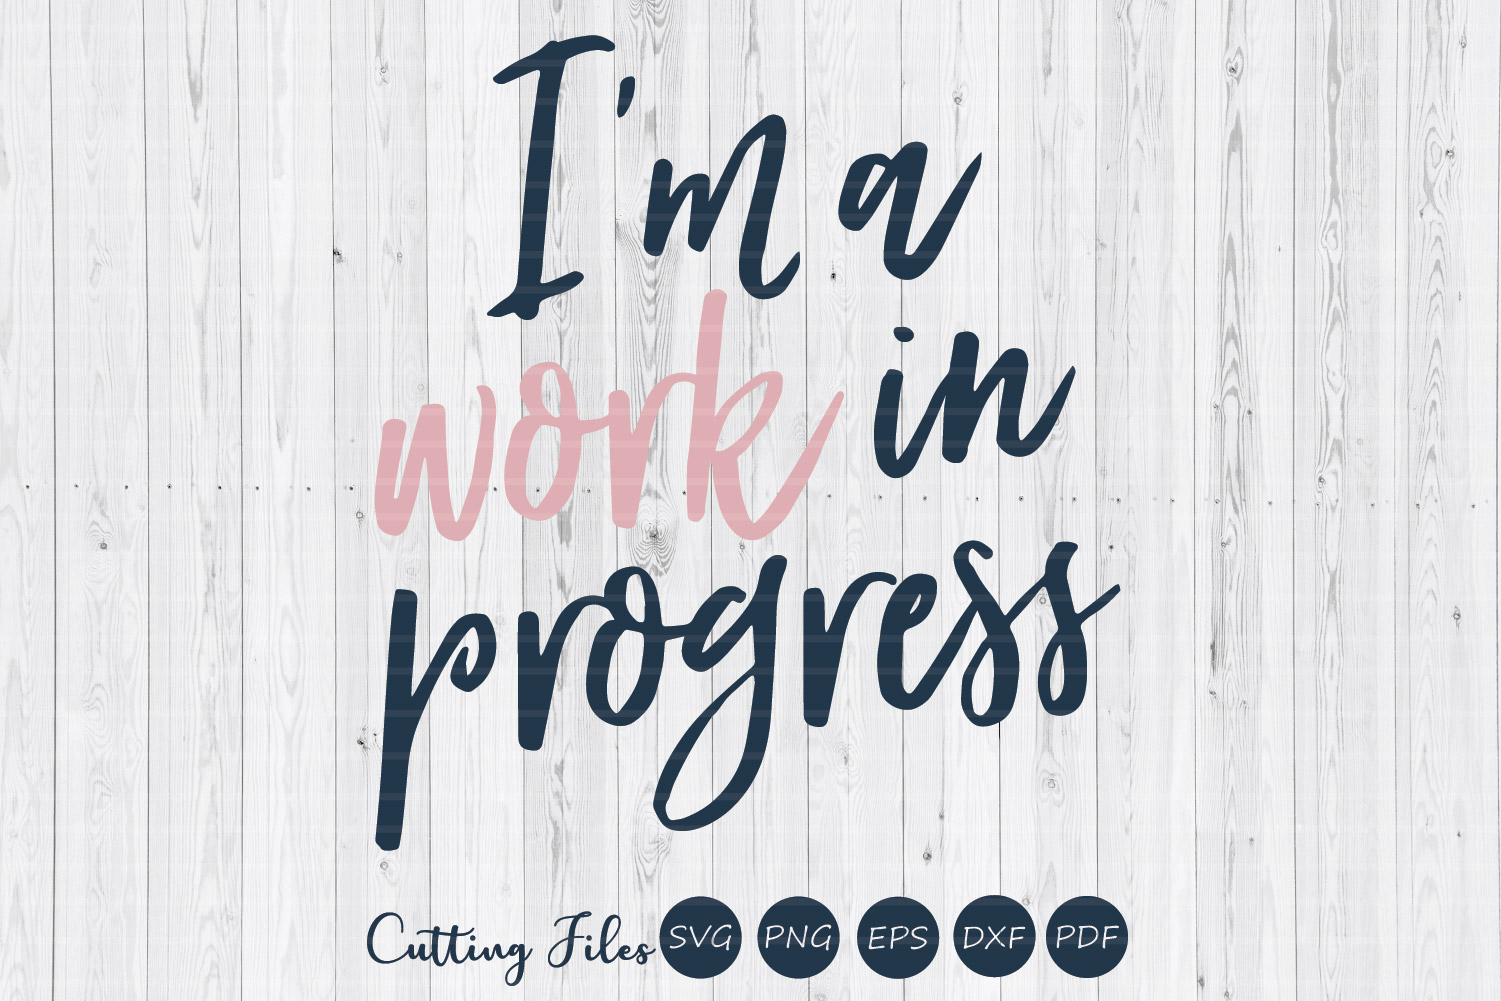 Download Free Work In Progress Motivational Svg Graphic By Hd Art Workshop for Cricut Explore, Silhouette and other cutting machines.